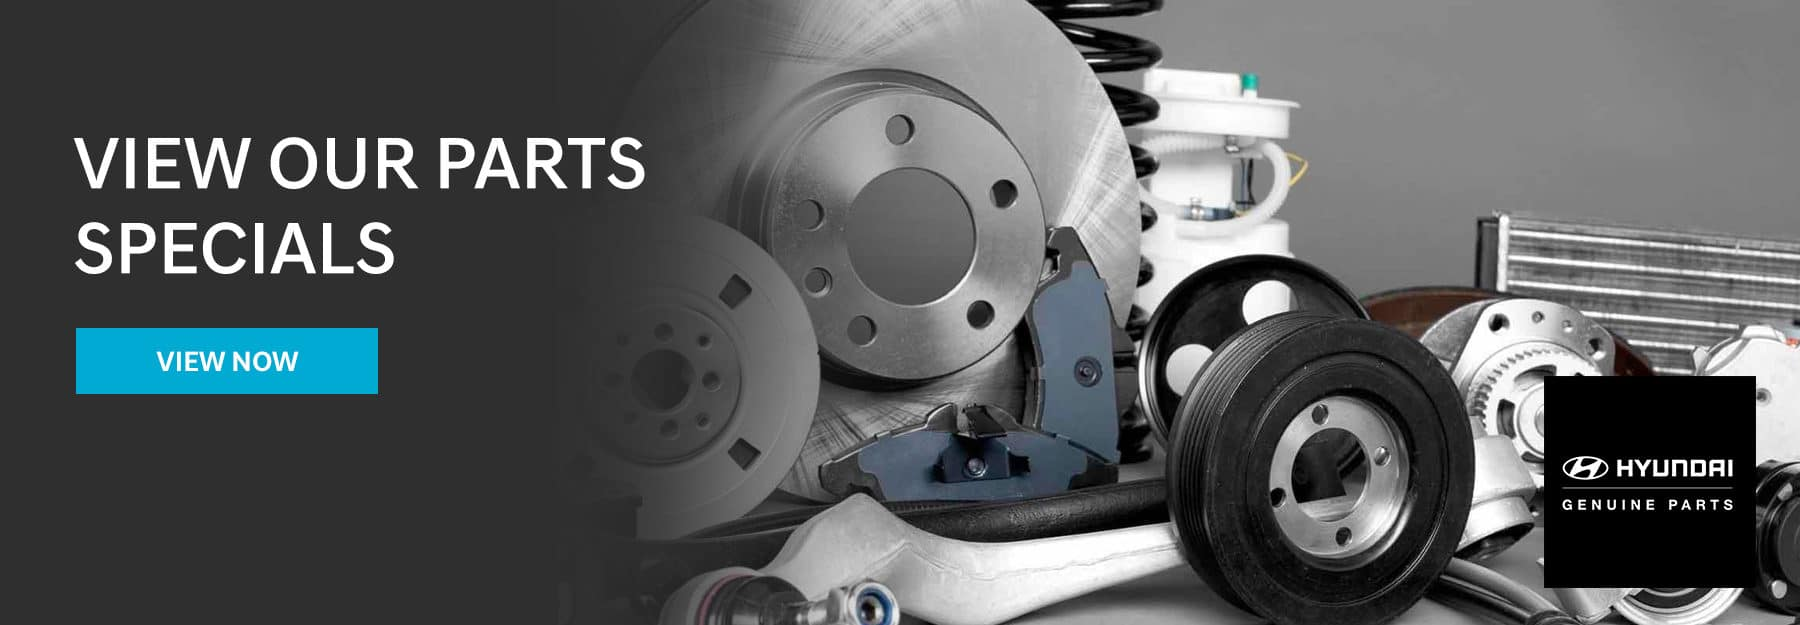 View Patrick Hyundai Parts Specials